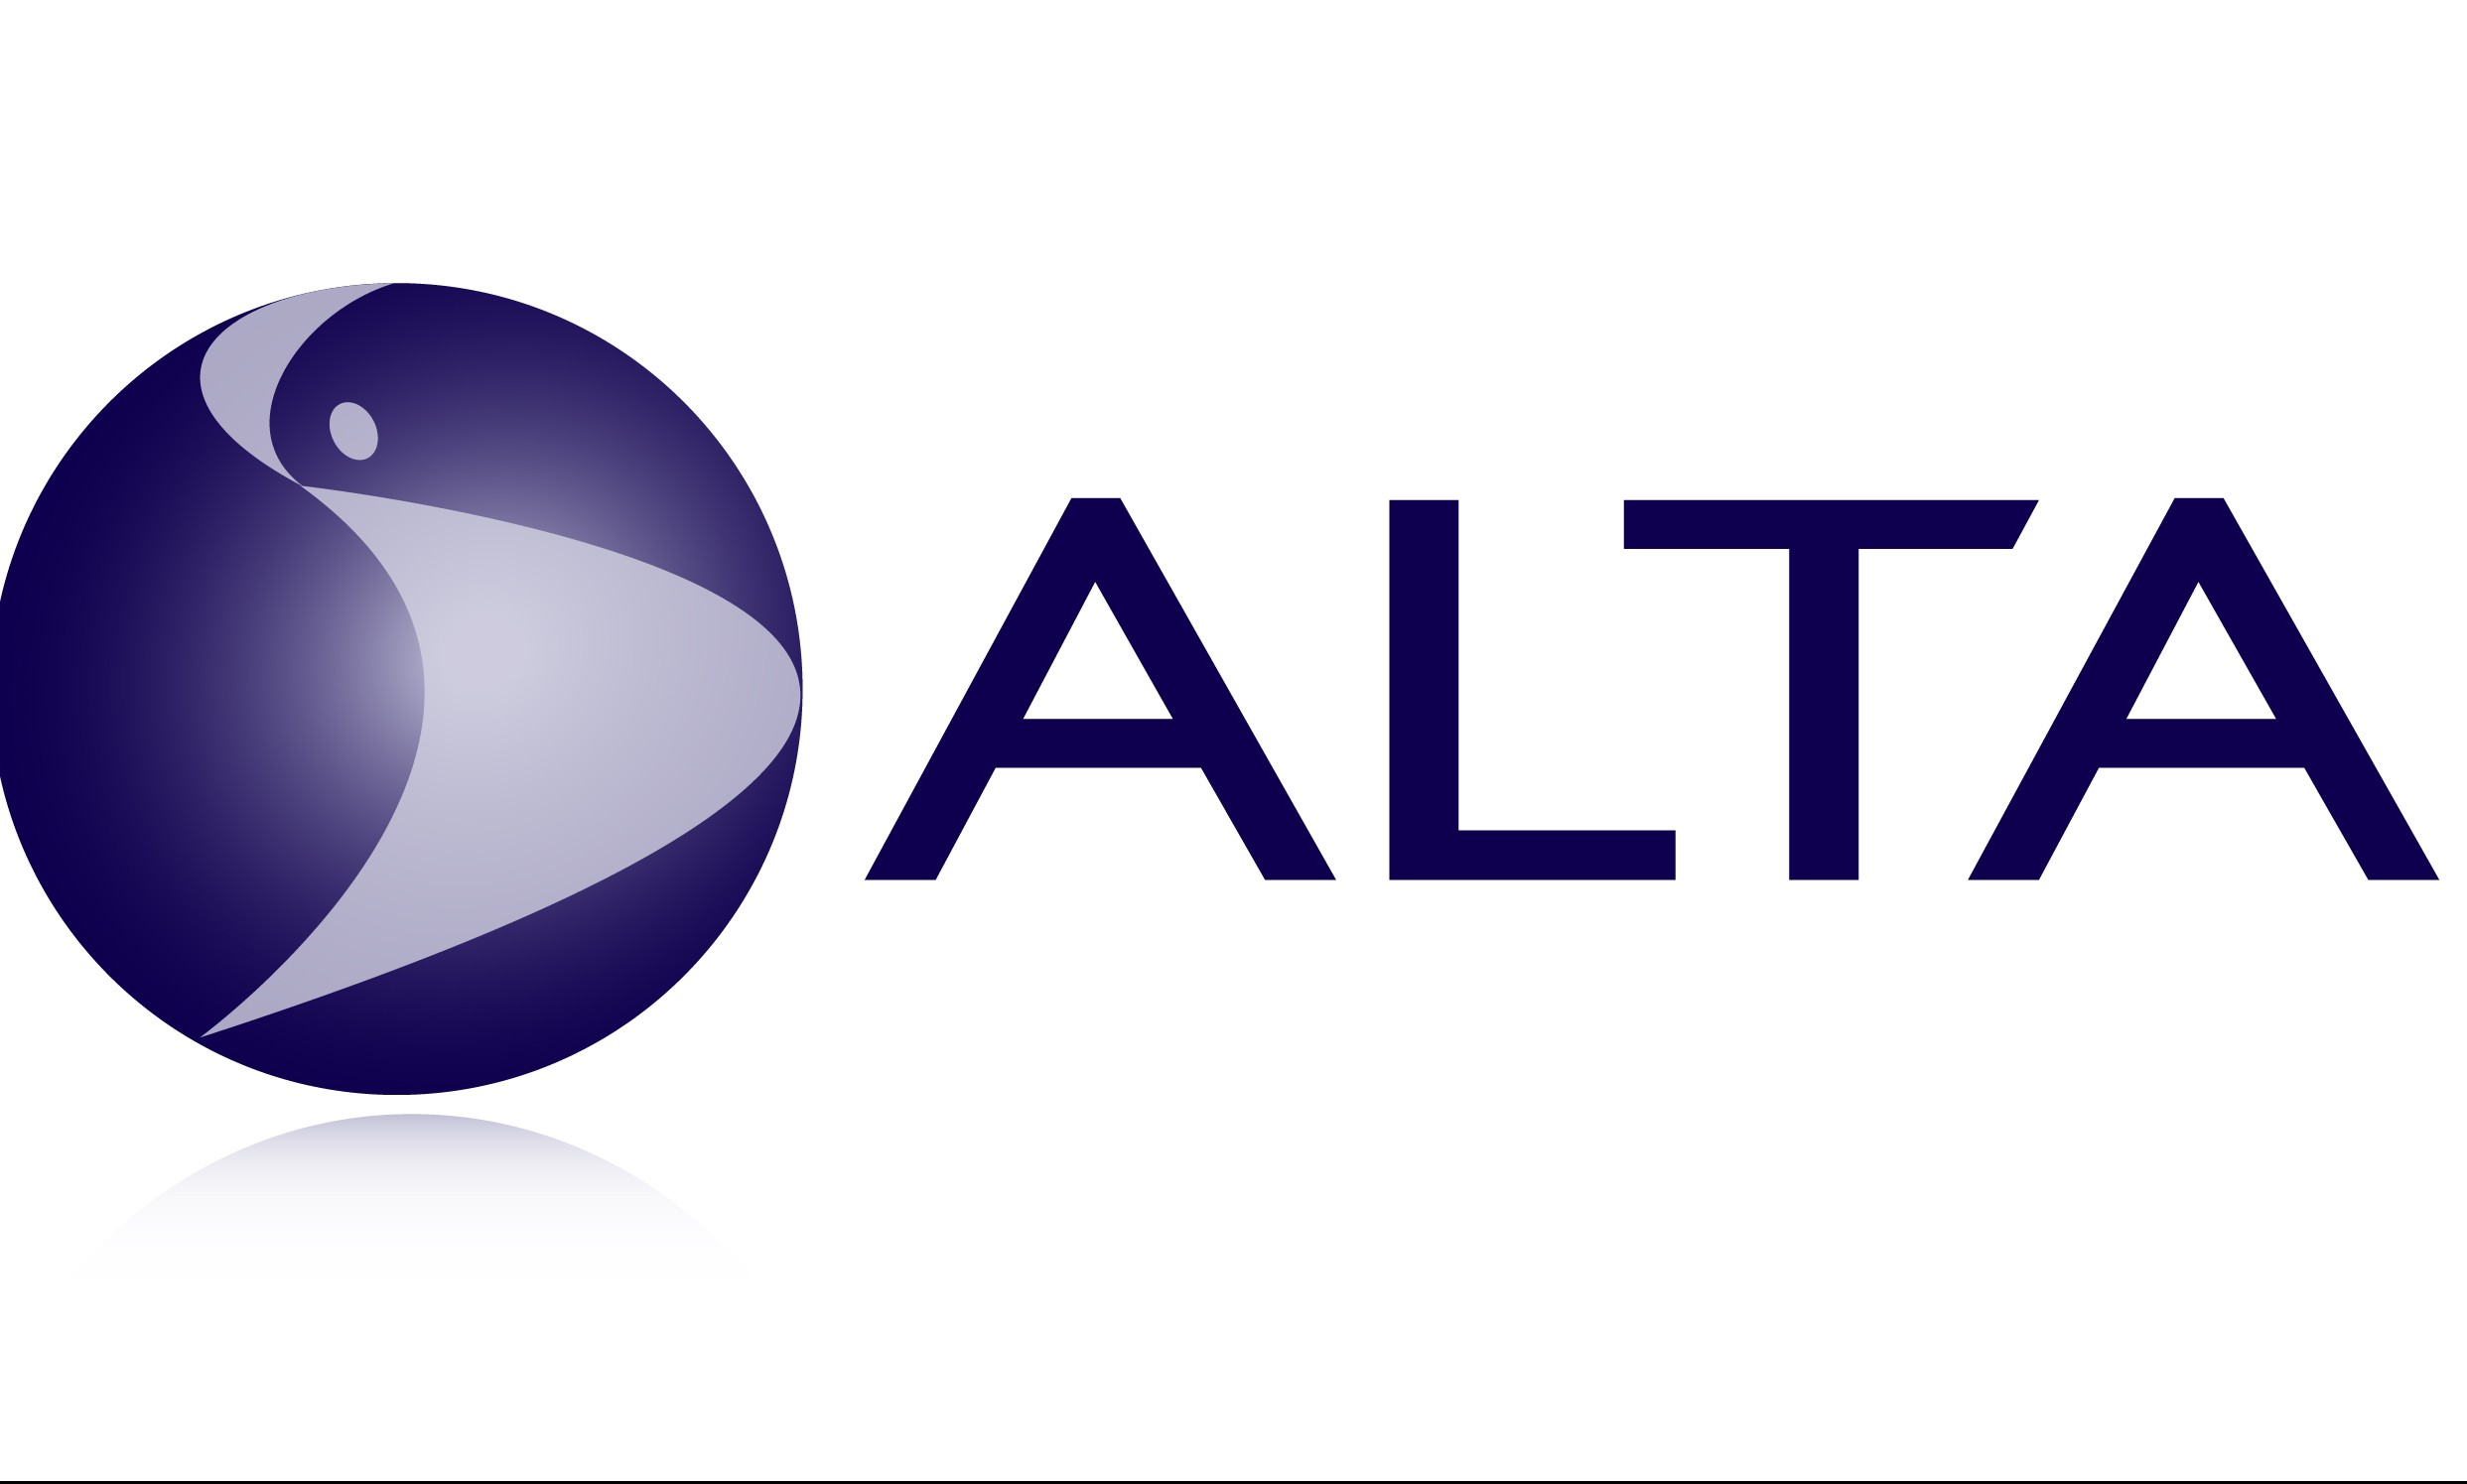 ALTA Supports ANAC Resolution 400/2016 on New Airline Passenger Rules